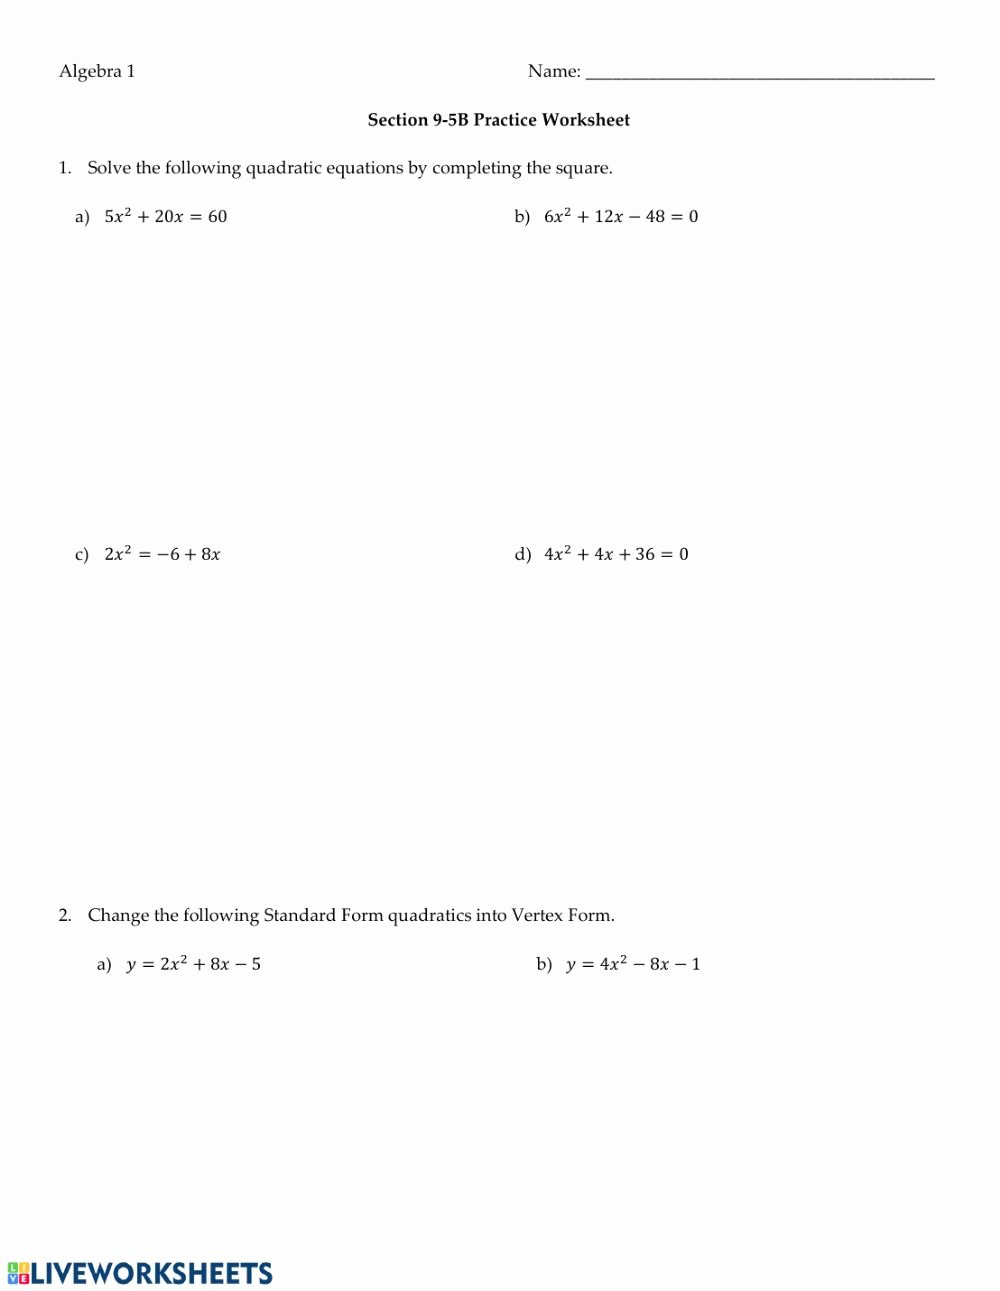 Completing the Square Practice Worksheet Ideas solving Quadratics by Pleting the Square Interactive